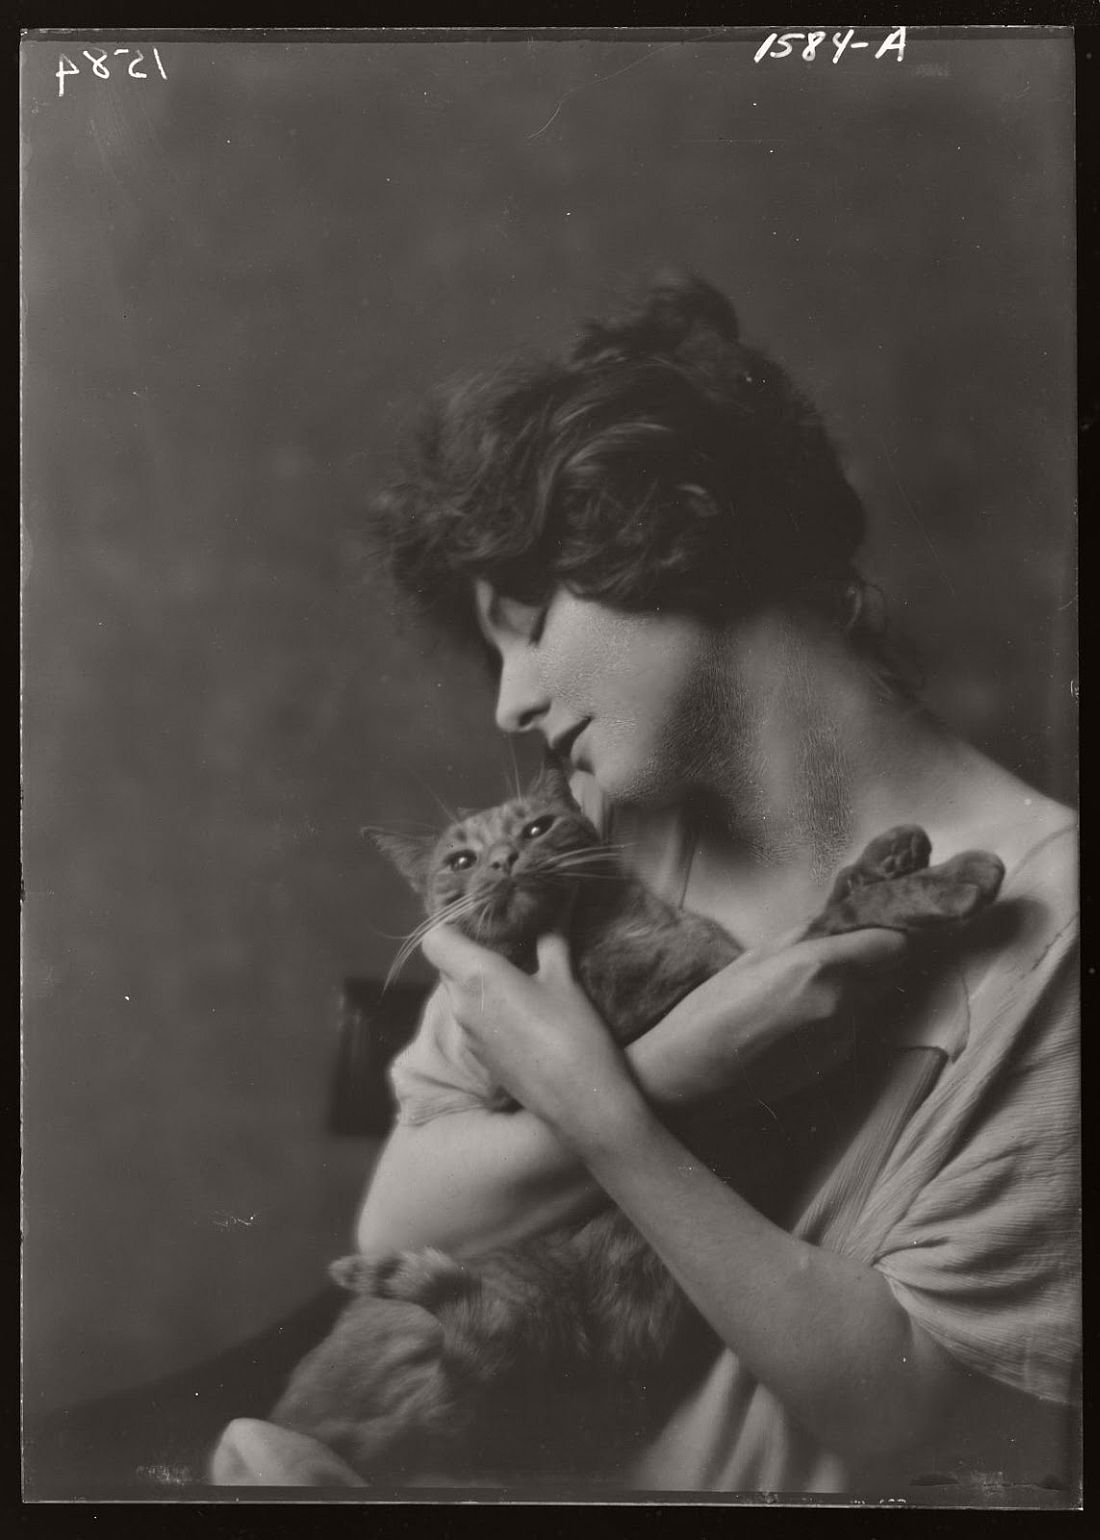 arnold-genthe-1910s-vintage-studio-portraits-of-girls-with-cat-07